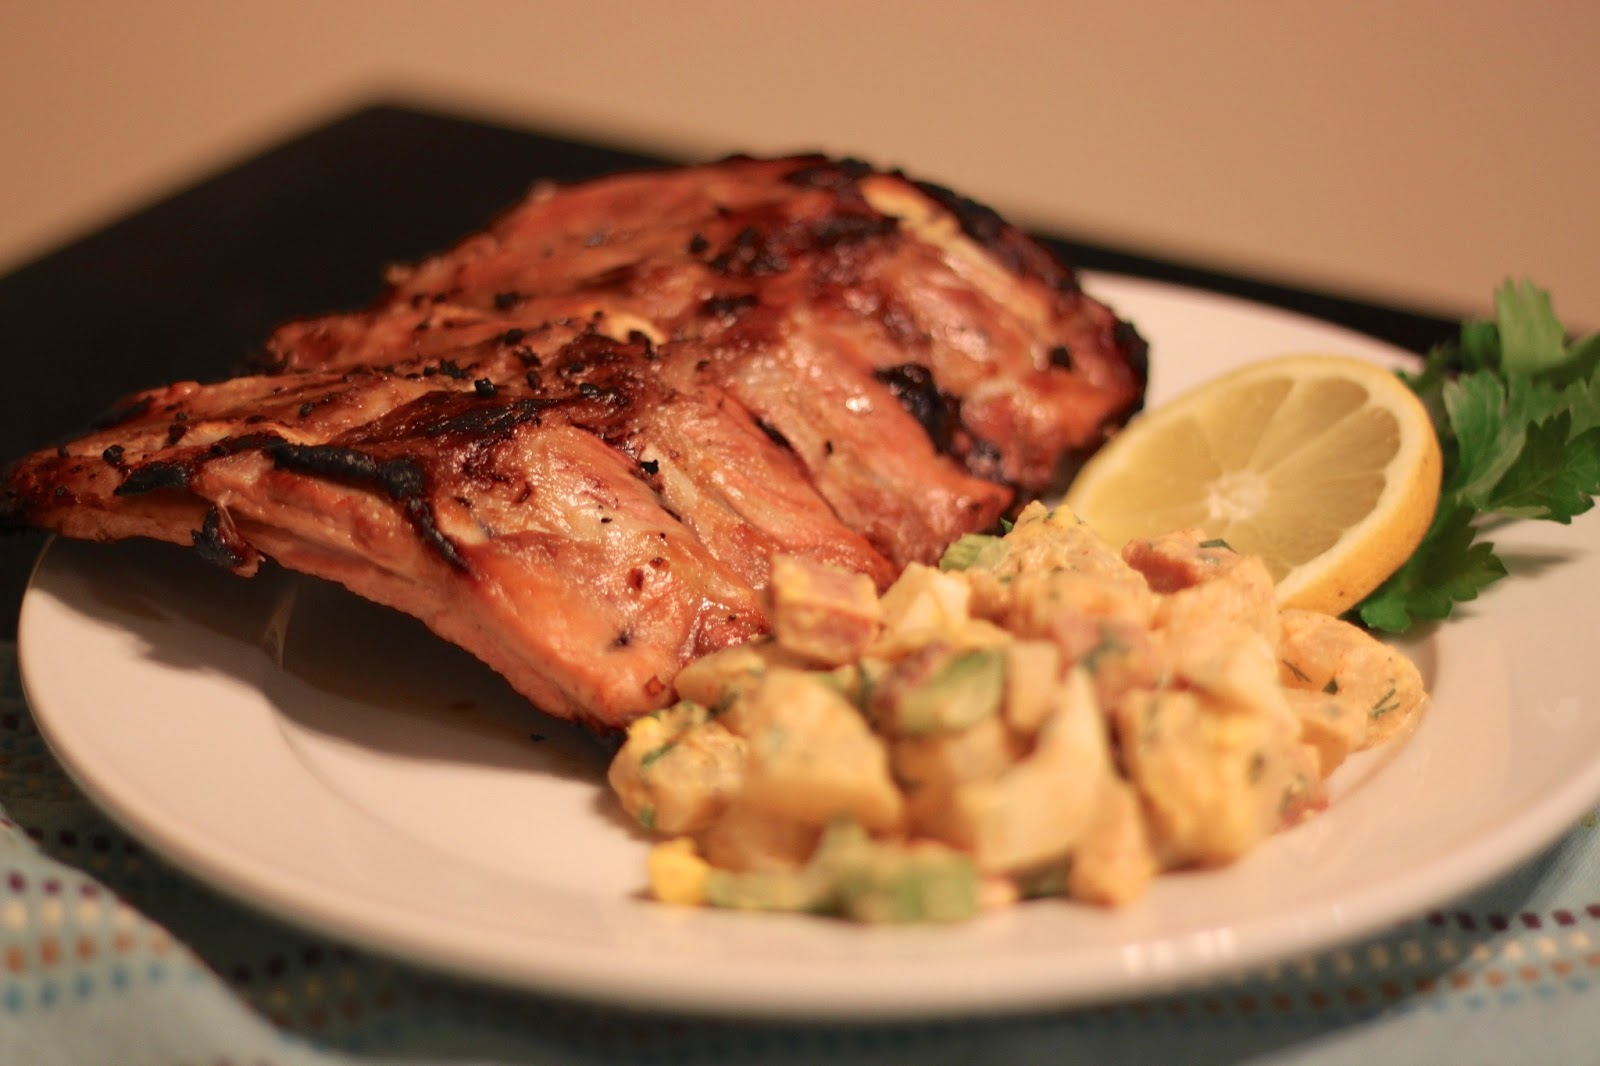 Naked Eats Rxd: Costillitas (Cuban Baby Back Ribs) from